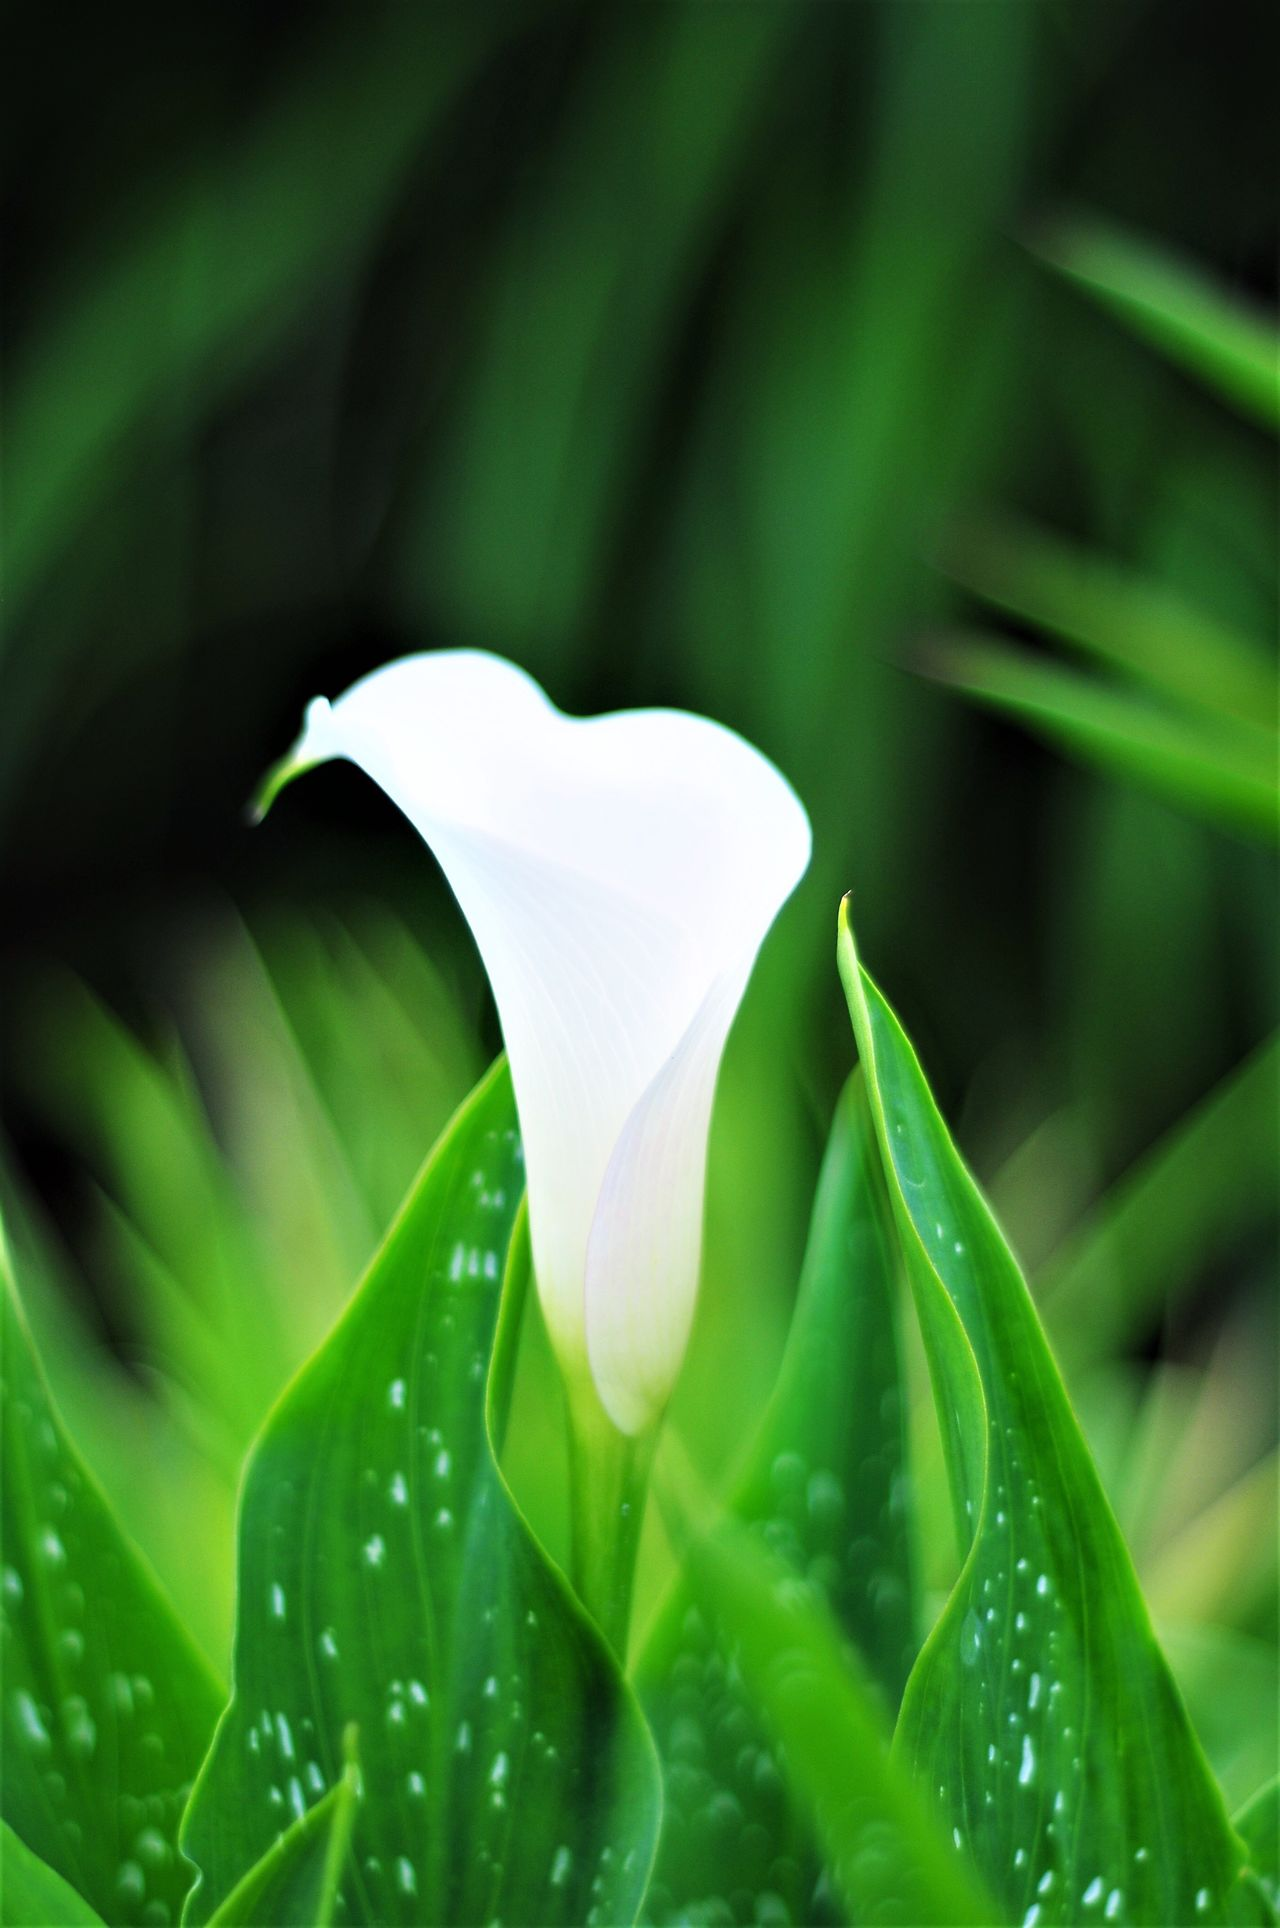 Arum Lily Nature Flower Petal Growth Beauty In Nature Fragility Plant Freshness White Color Close-up Green Color Flower Head Leaf No People Outdoors Colour Image Vertical One Flower Botanical Arum Lily  Calla Lily Blooming Purity Plant Freshness